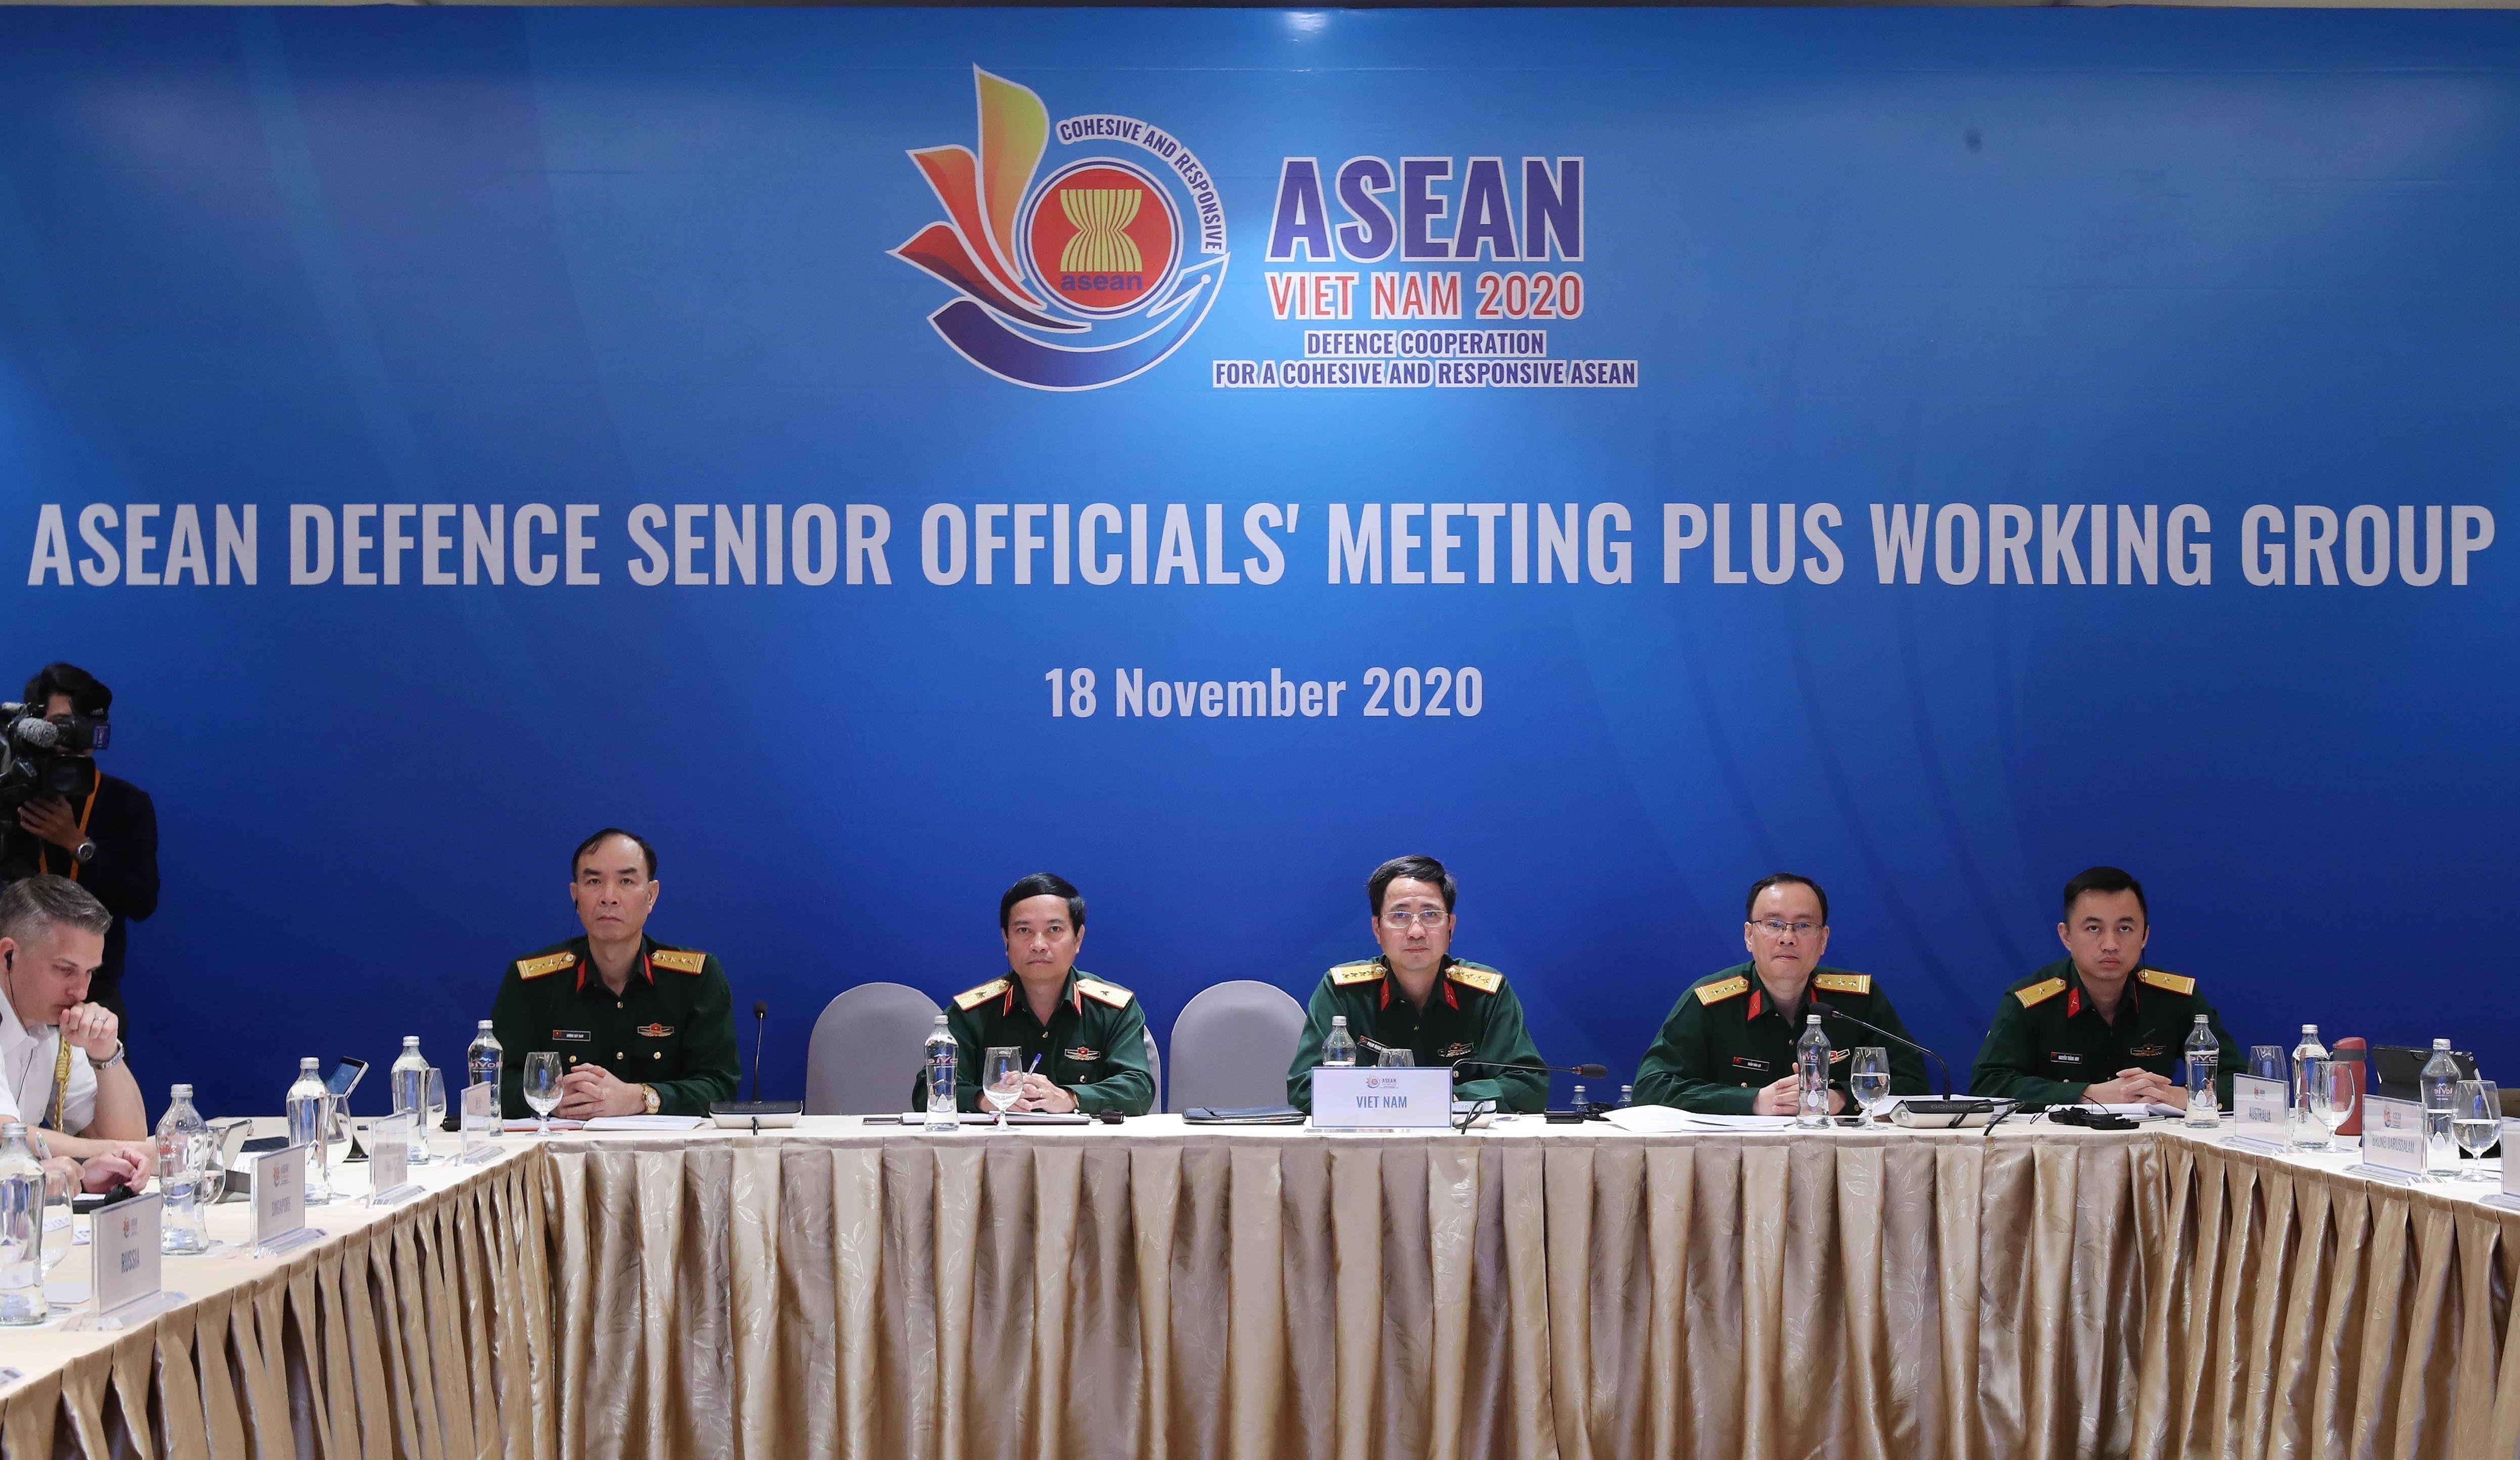 ASEAN 2020: ASEAN Defence Senior Officials' Meeting Plus Working Group hinh anh 1